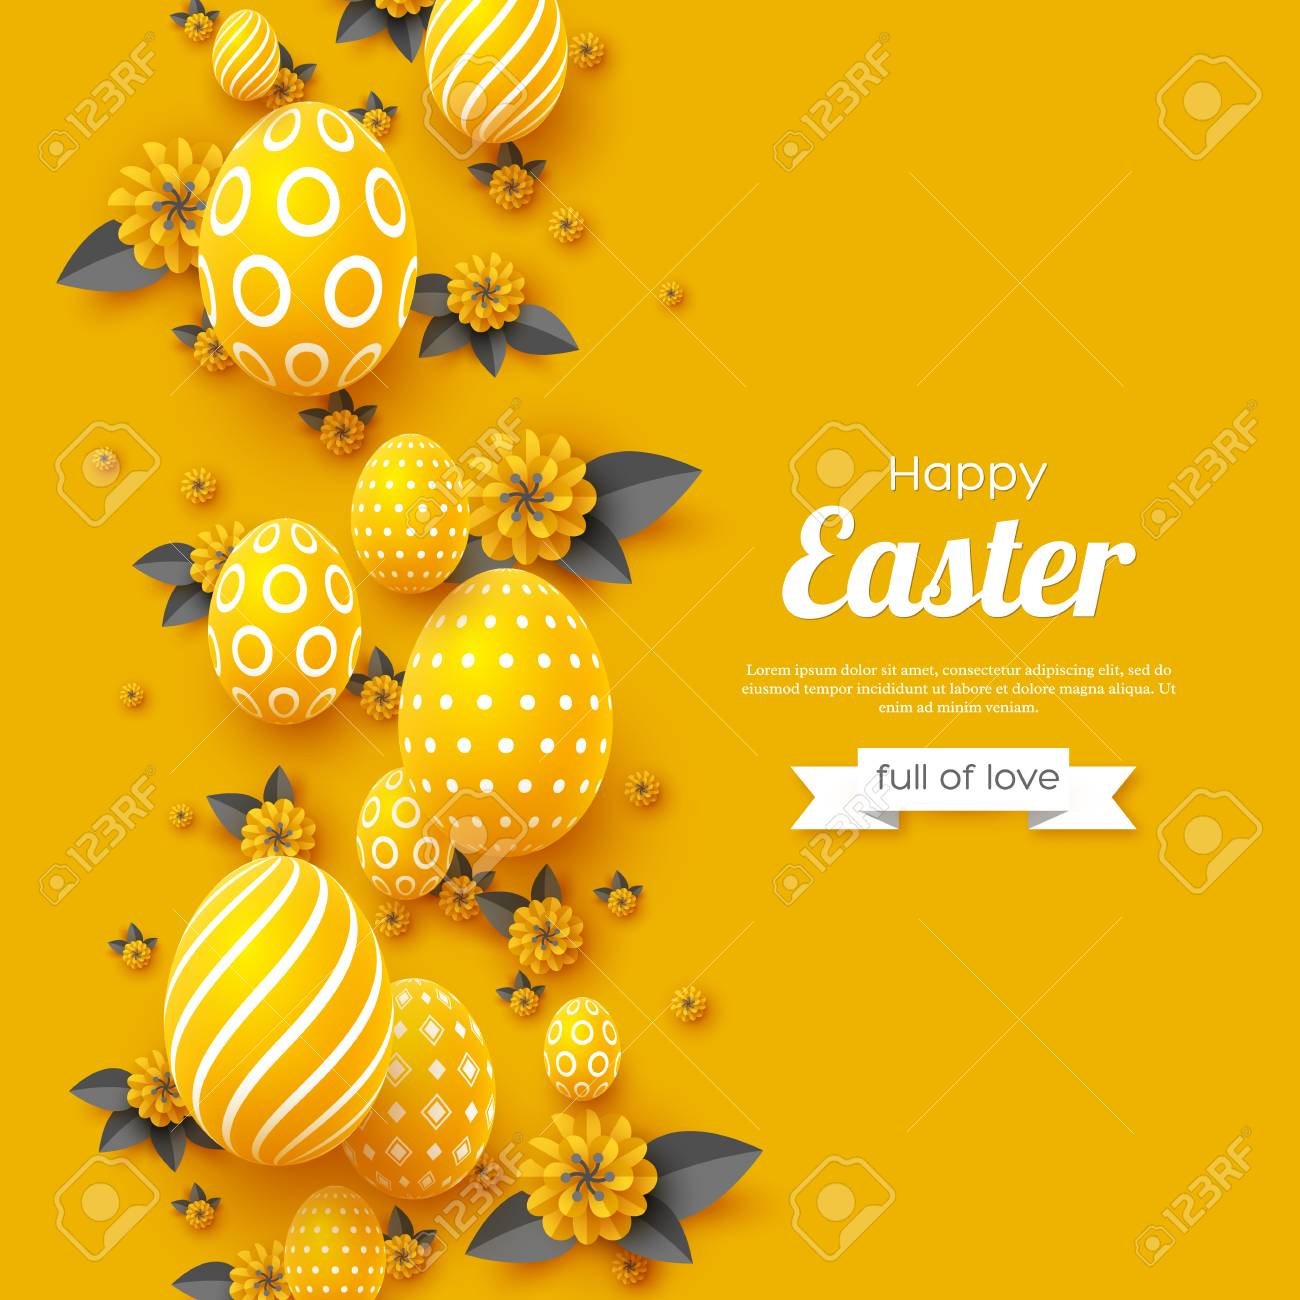 Easter holiday greeting card. - 102080925